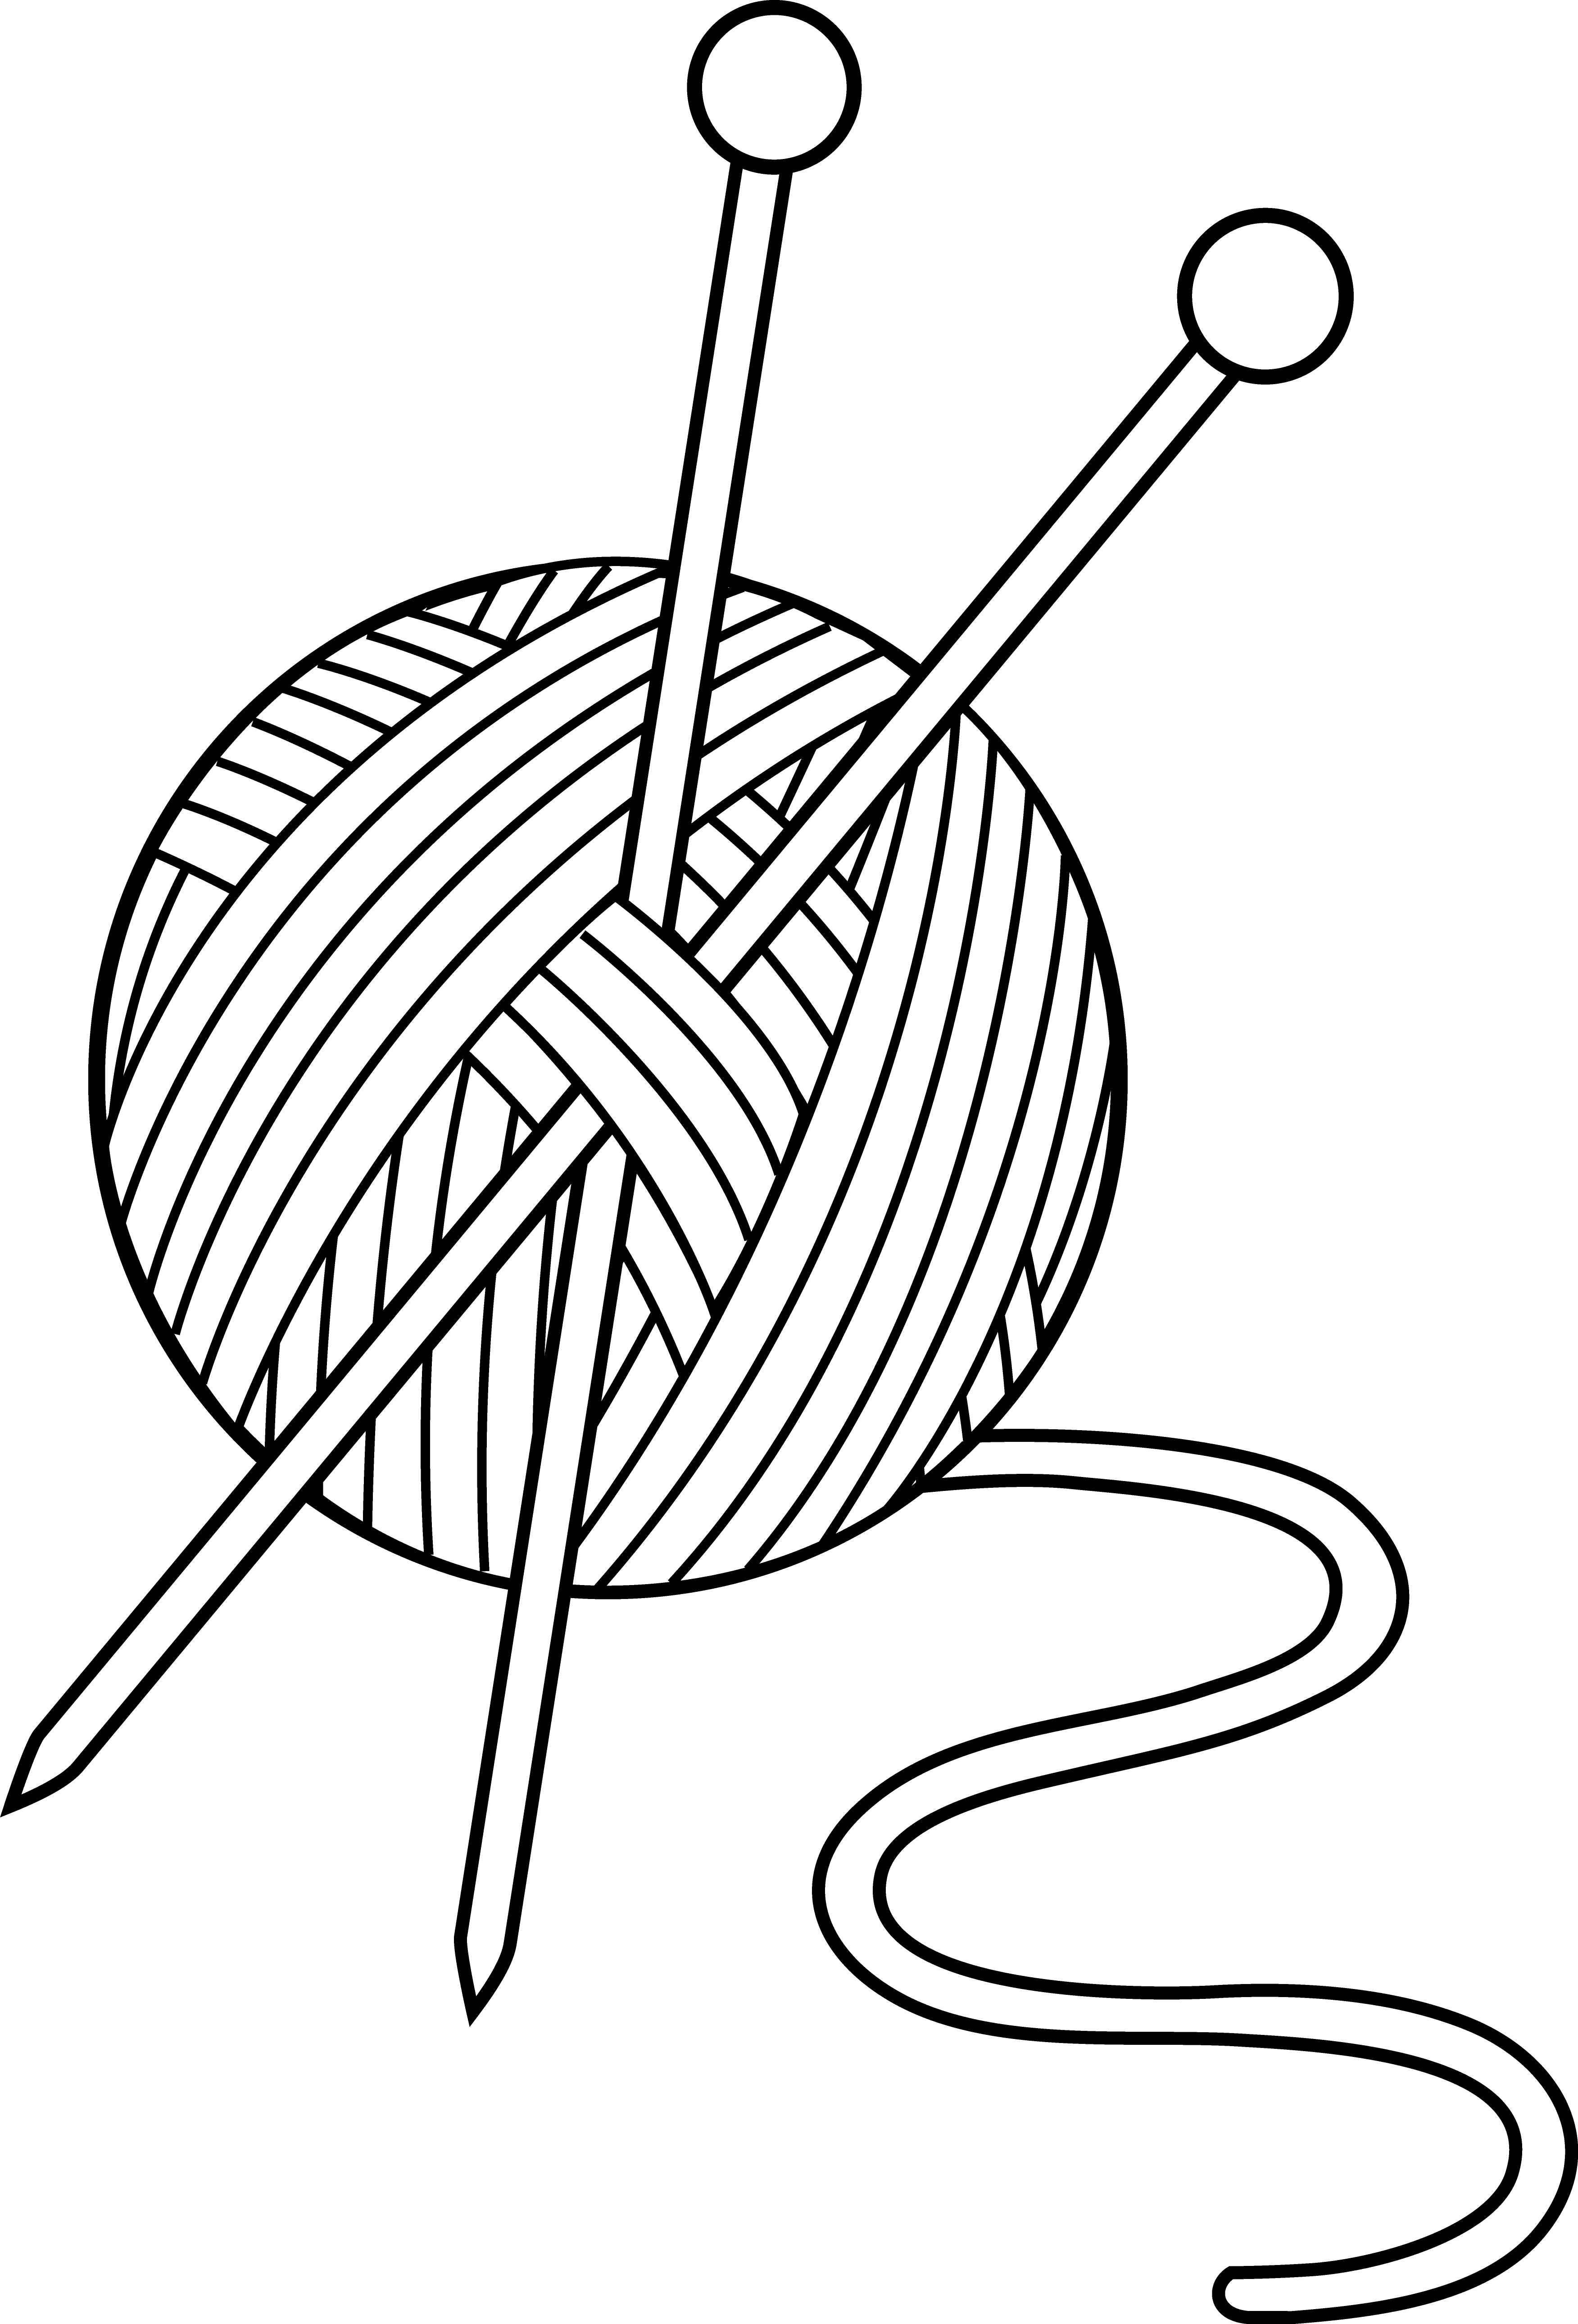 Wool Clipart.